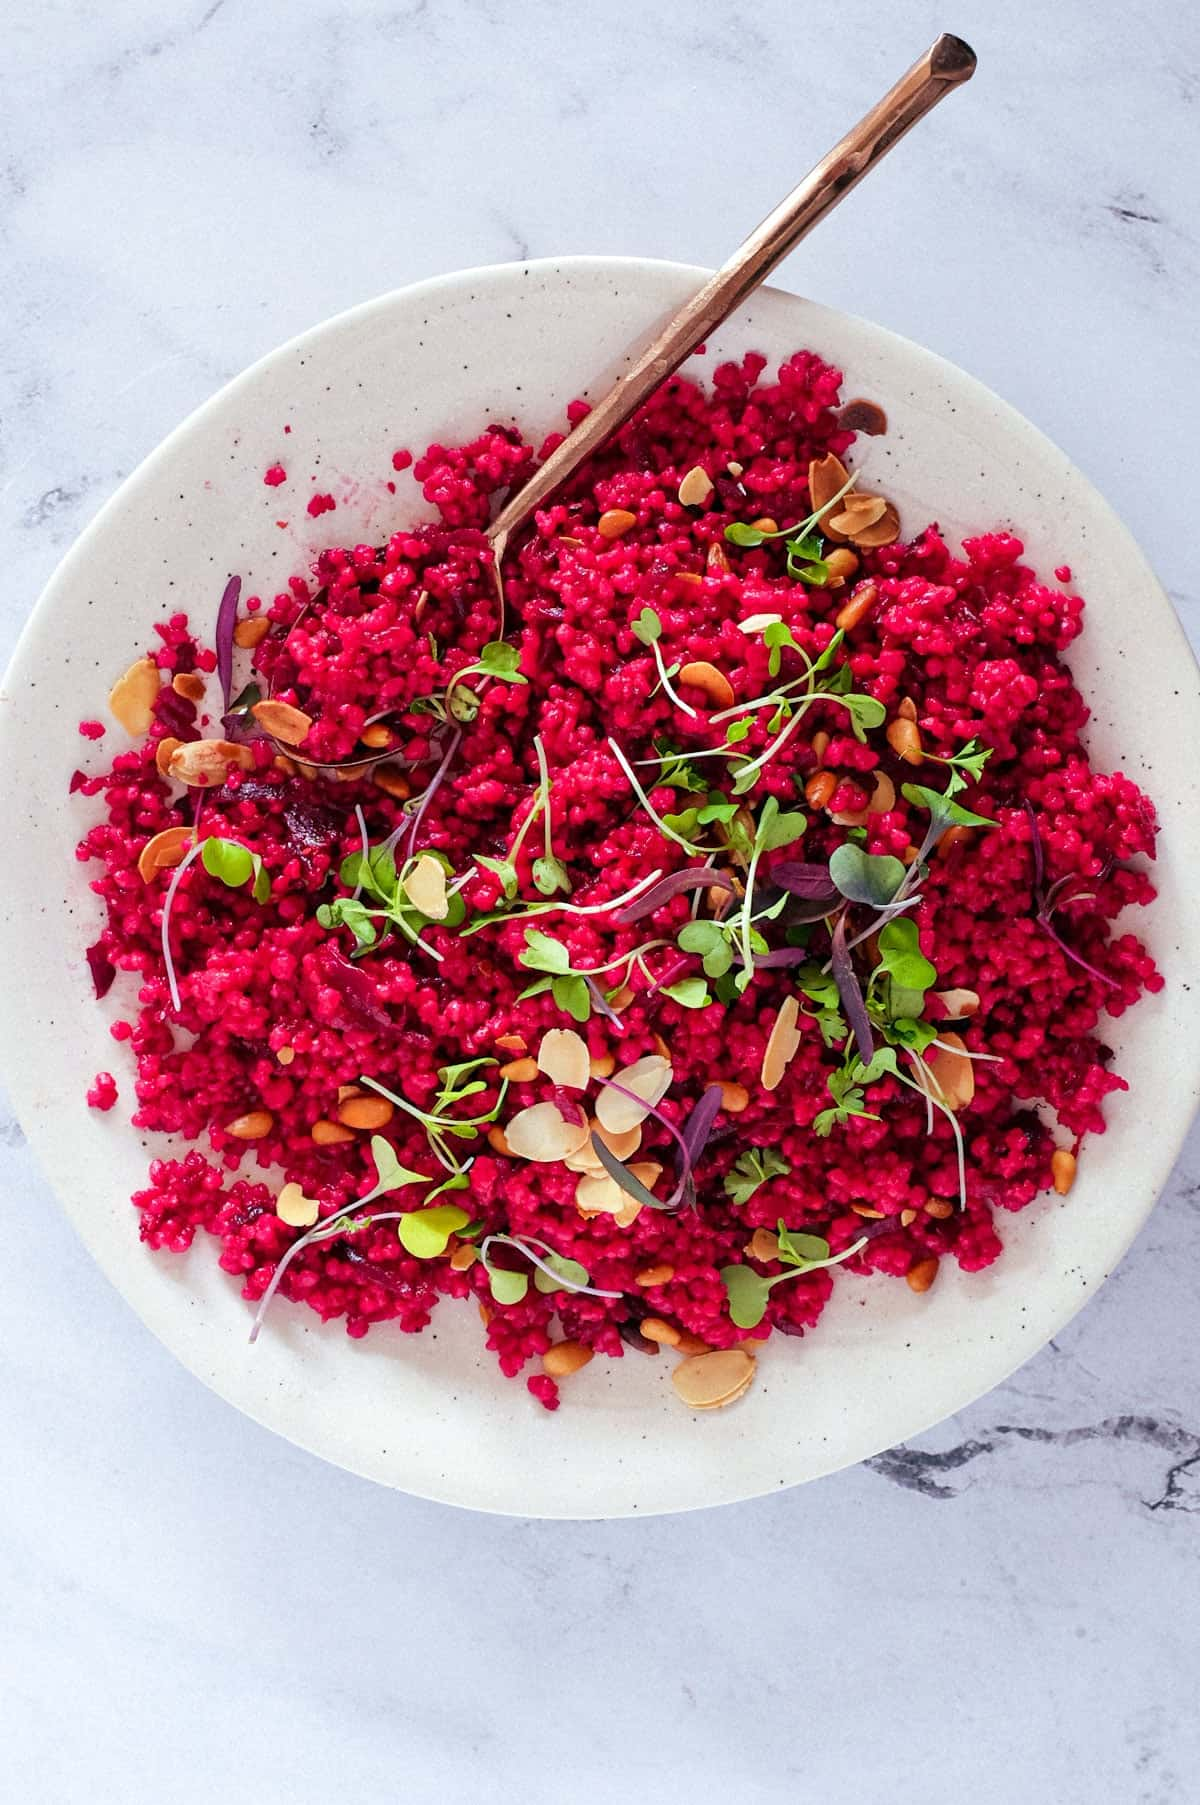 Israeli Couscous with Beetroot on a plate, scattered with micro greens and nuts.